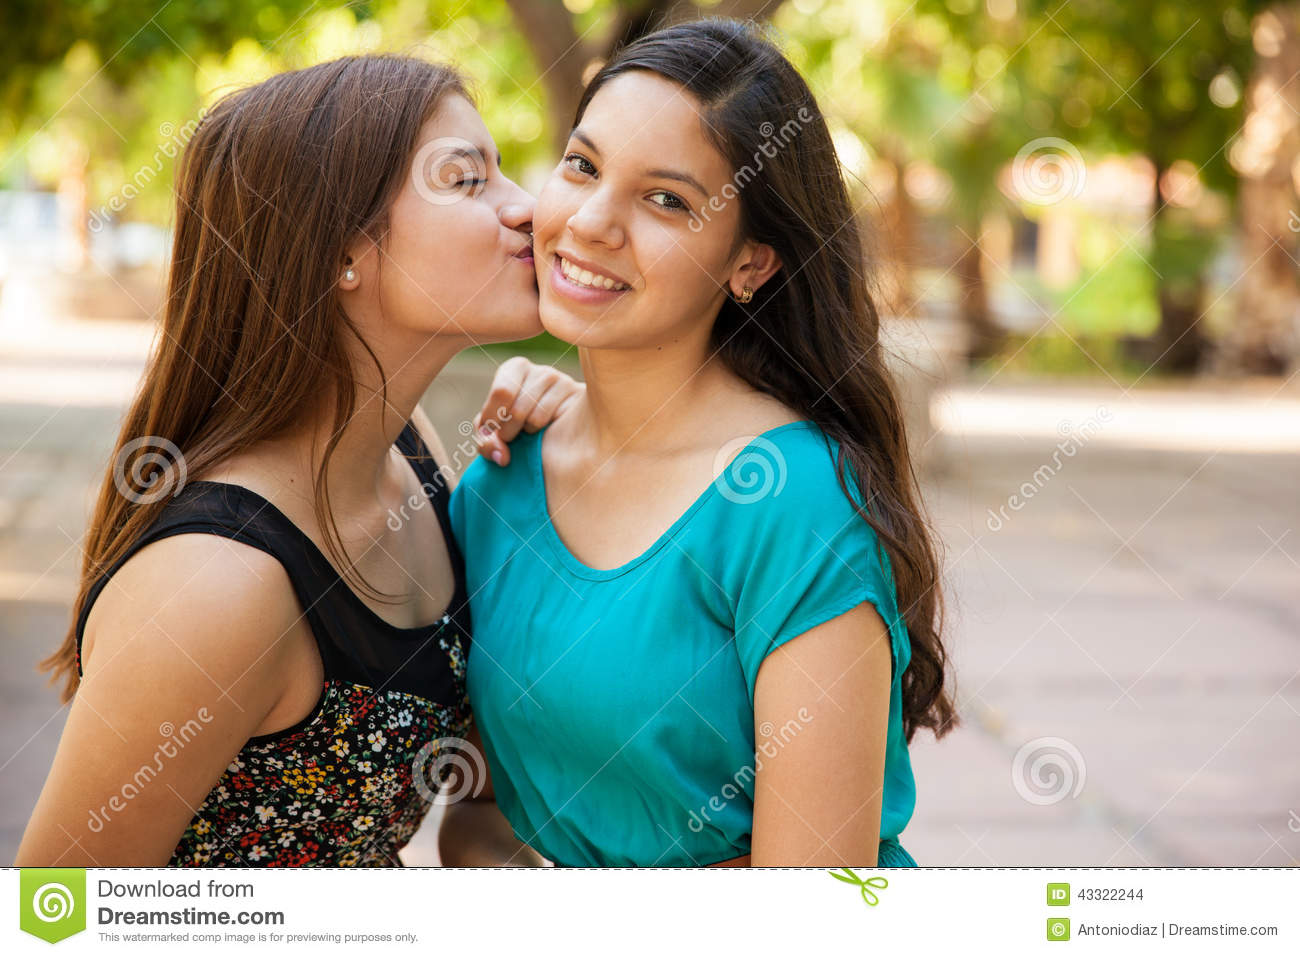 Kissing My Best Friend Stock Photo Image 43322244